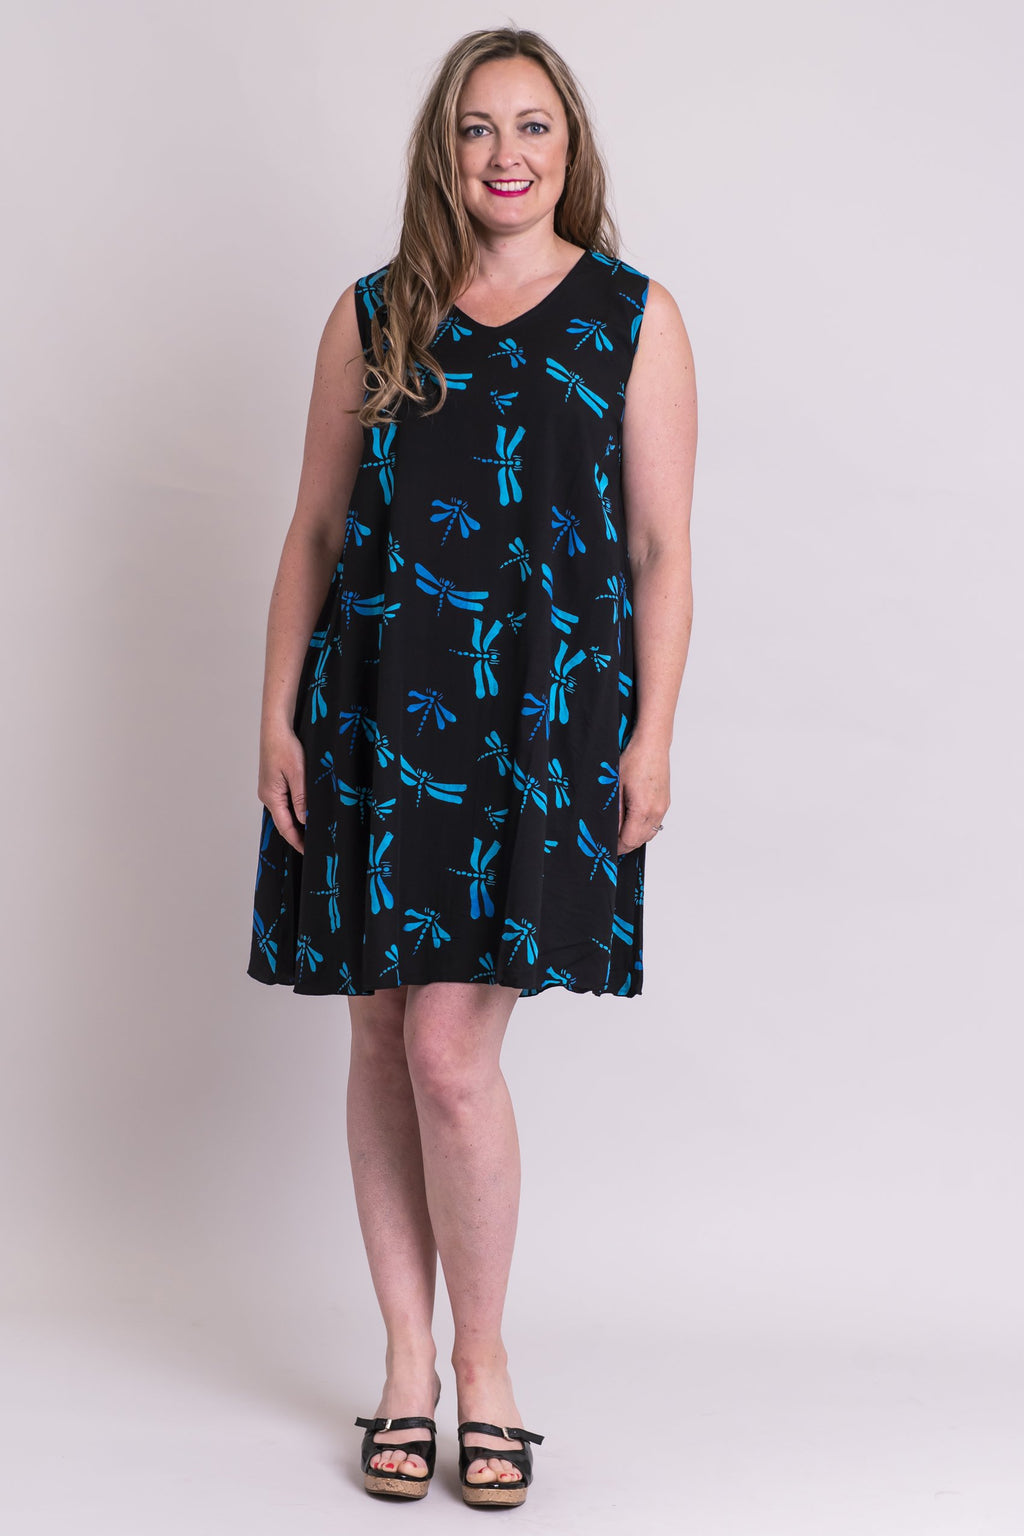 Swing N/S Dress, Turq Dragonfly, Batik Art - Blue Sky Clothing Co